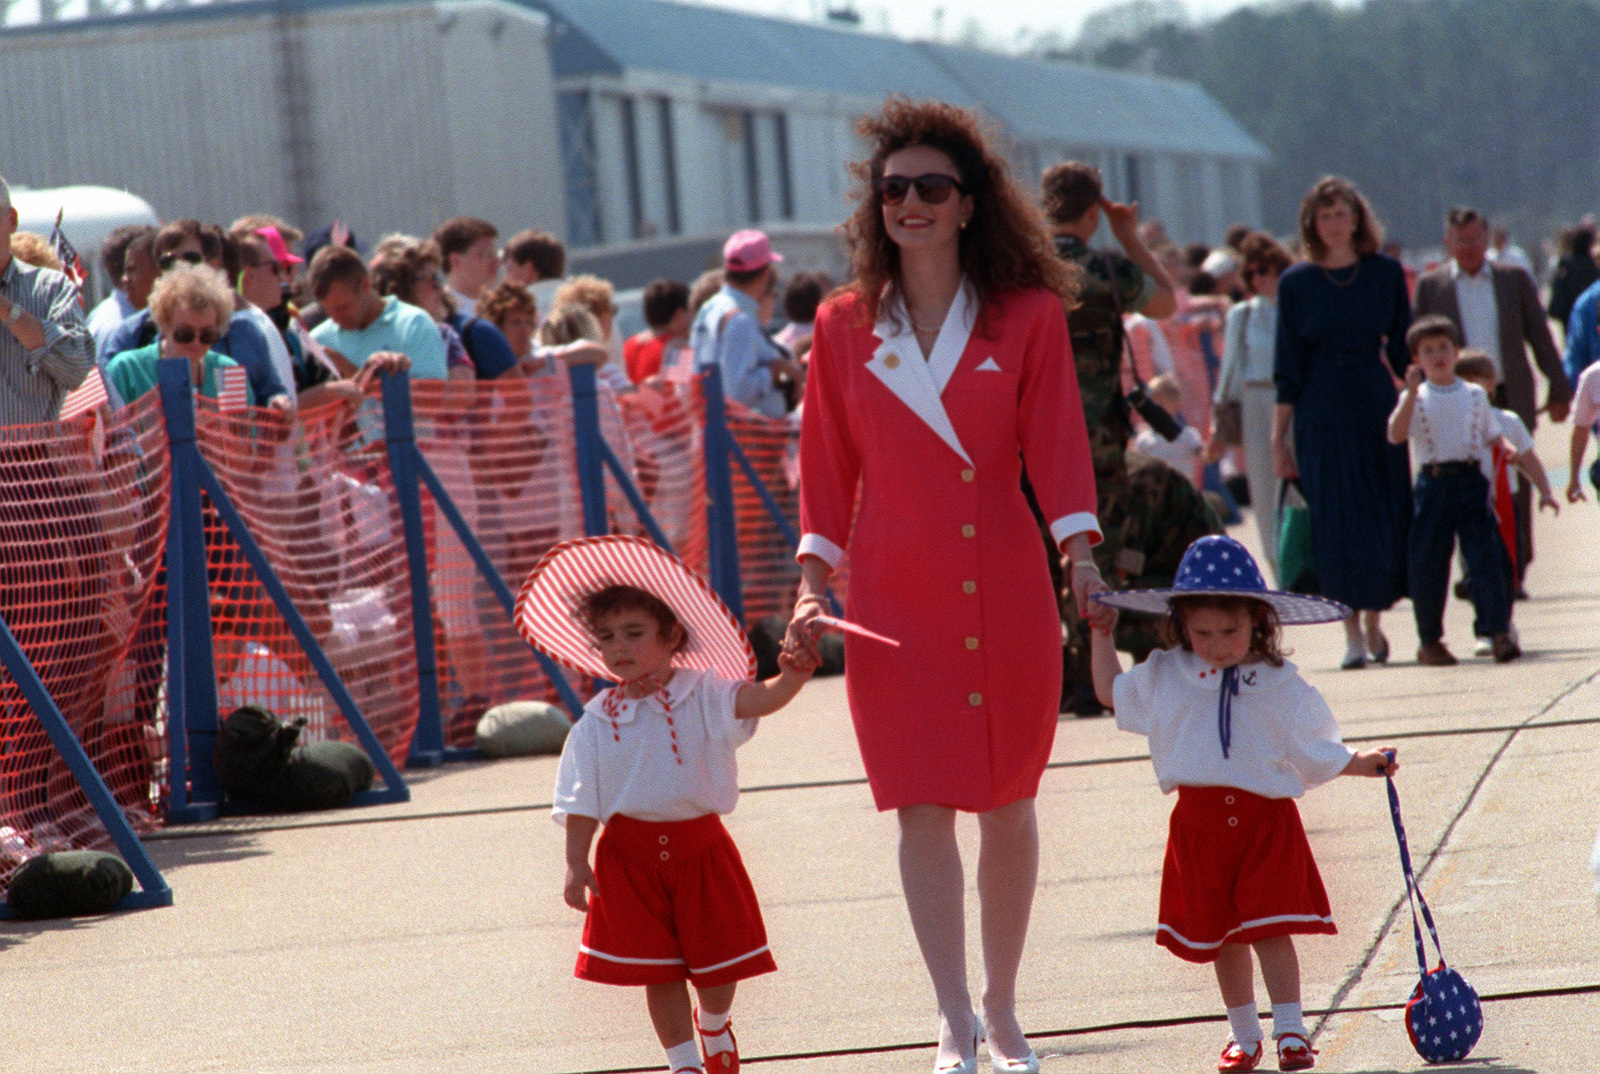 The wife and children of a naval aviator wait on the flight line for his return. The F-14A Tomcat aircraft and A-6E Intruder aircraft squadrons of Carrier Air Wing 3 (CVW-3) and Carrier Air Wing 17 (CVW-17) are returning to Oceana following their participation in Operation Desert Shield and Operation Desert Storm. CVW-3 and CVW-17 were deployed in the Red Sea aboard the aircraft carriers USS JOHN F. KENNEDY (CV-67) and USS SARATOGA (CV-60), respectively